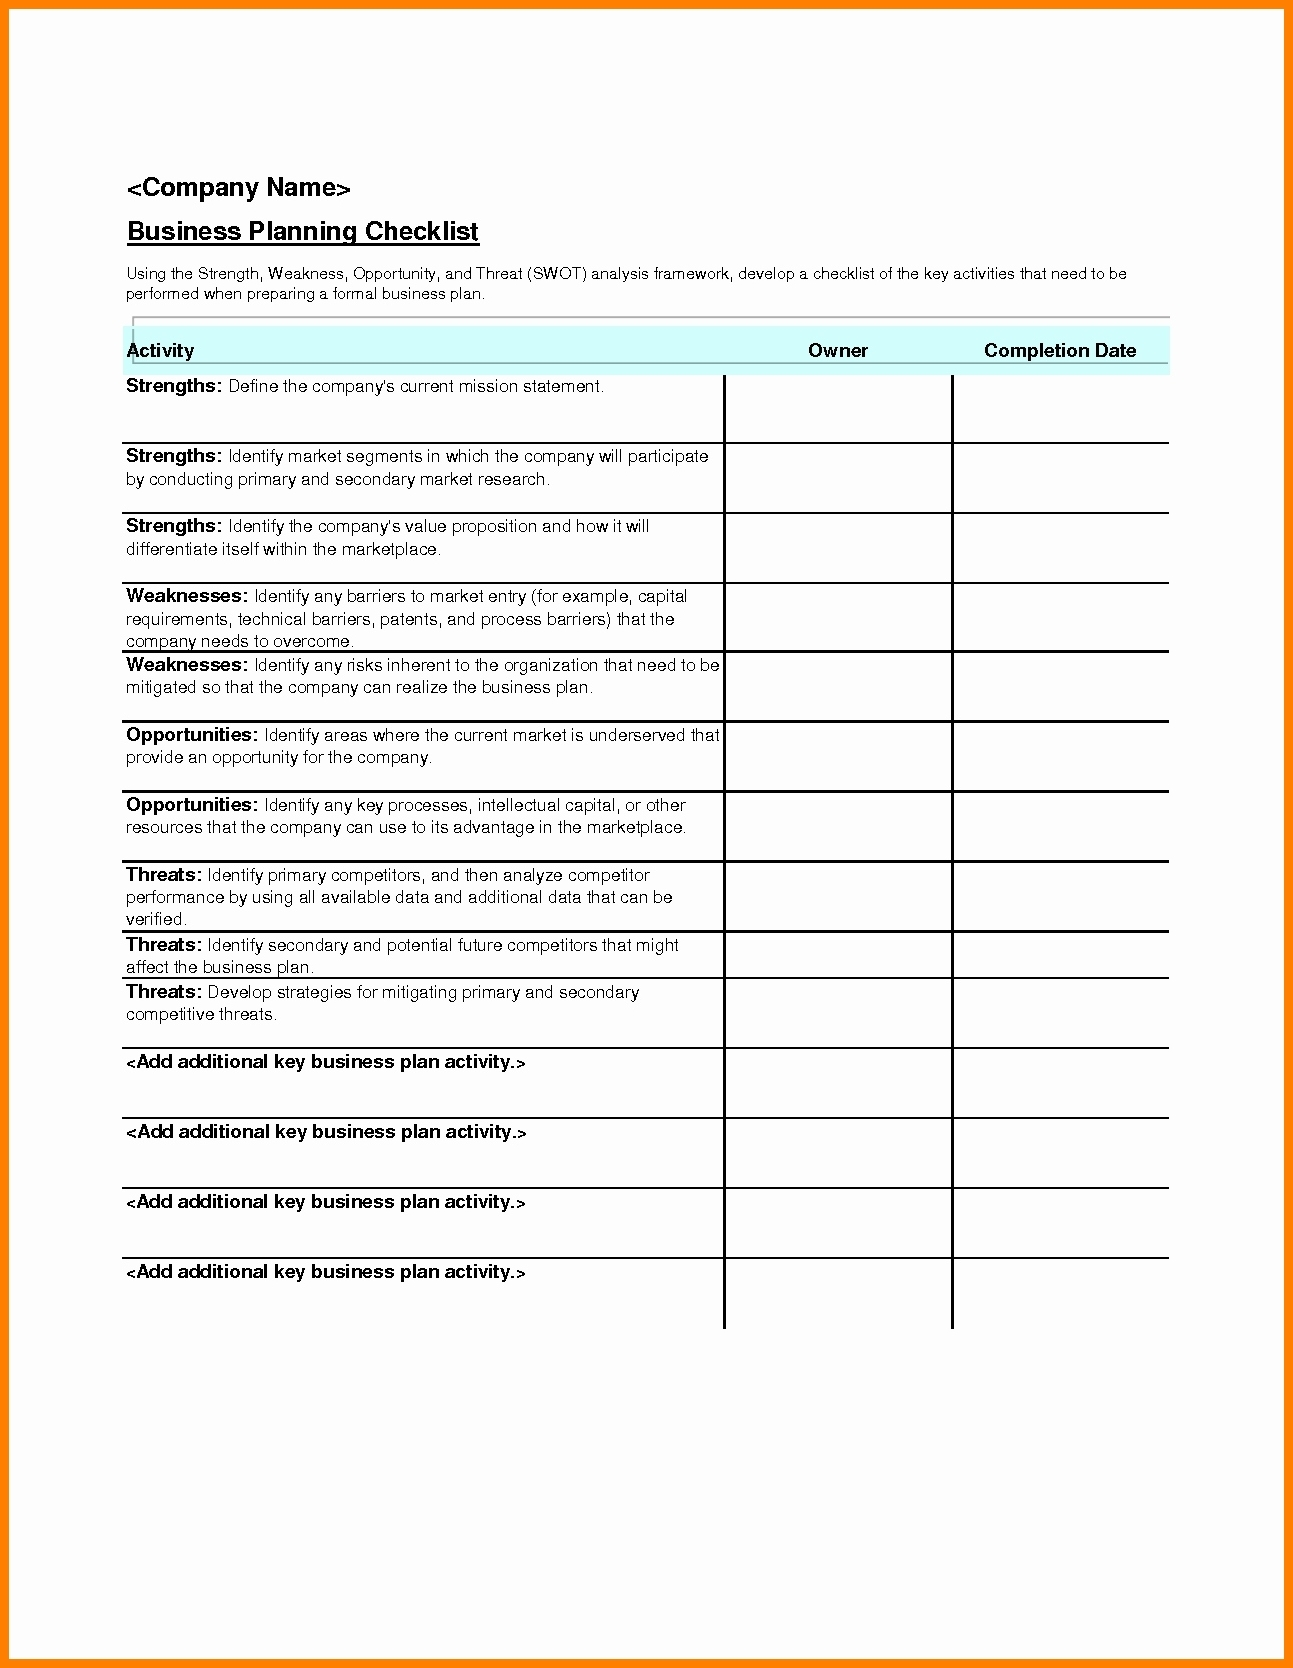 Corporate Event Planning Checklist Template | Template Calendar inside Corporate Event Planning Checklist Template